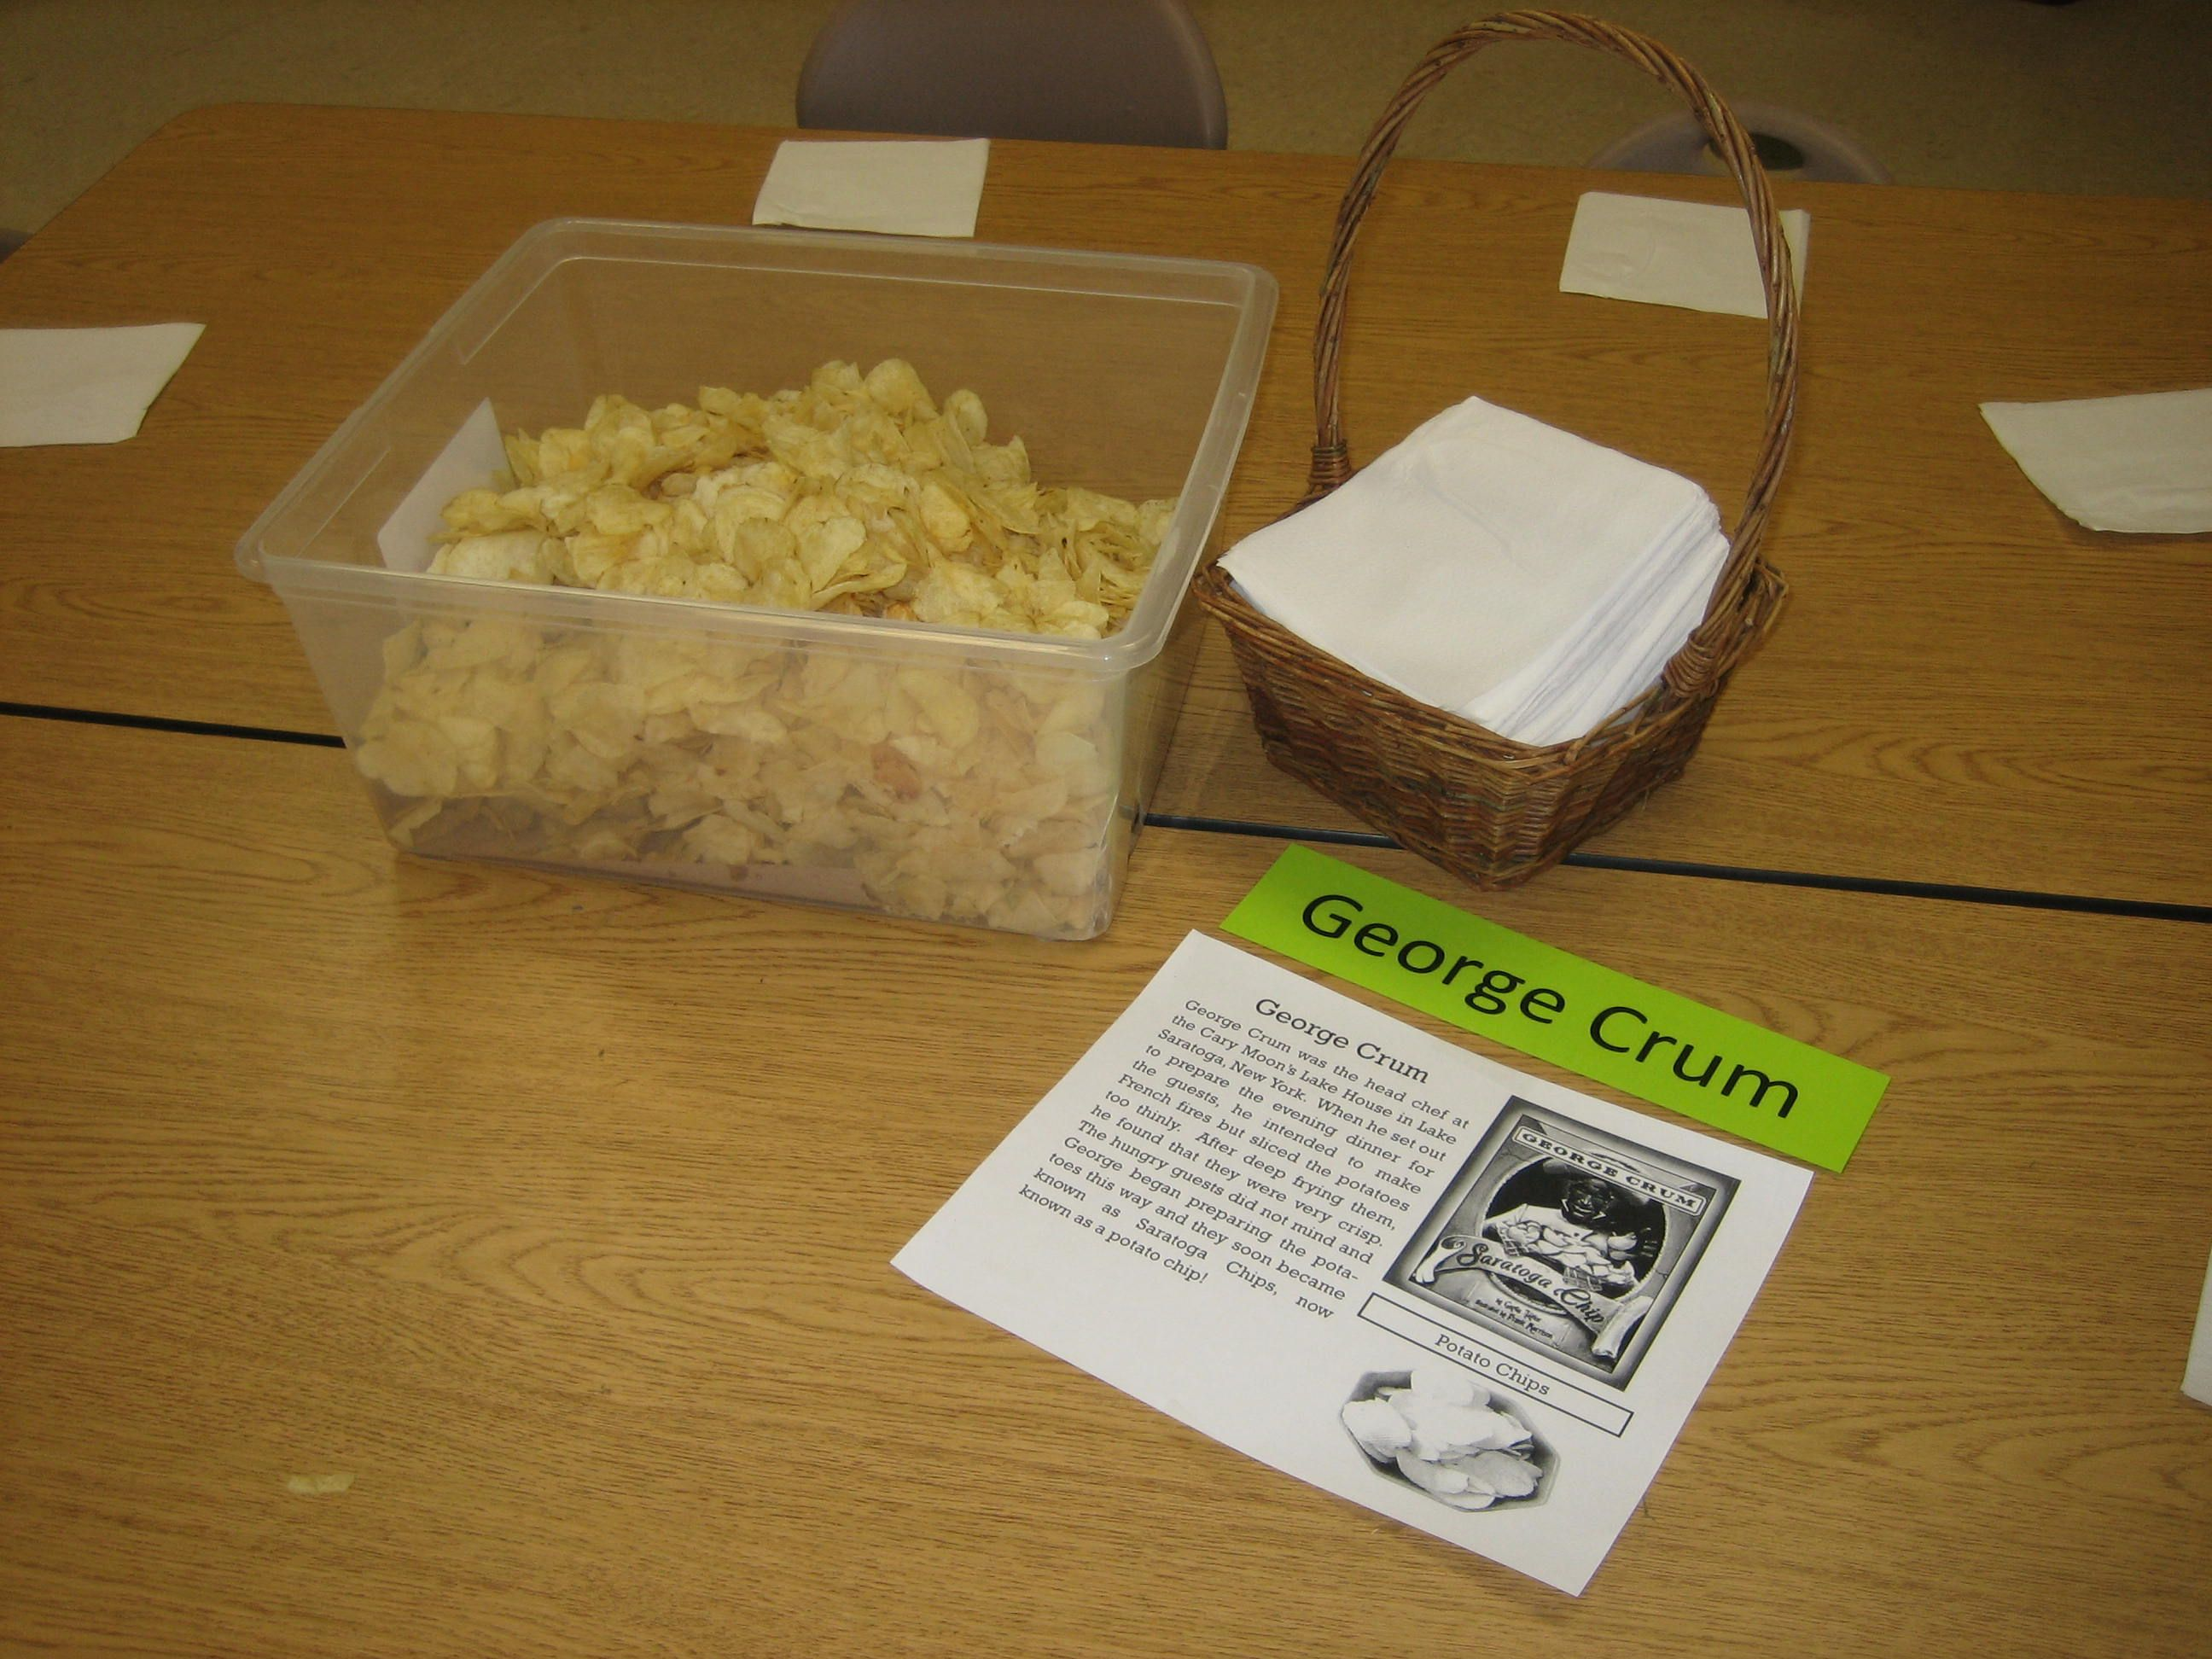 George Crum Was The Early Inventor Of Today S Potato Chip